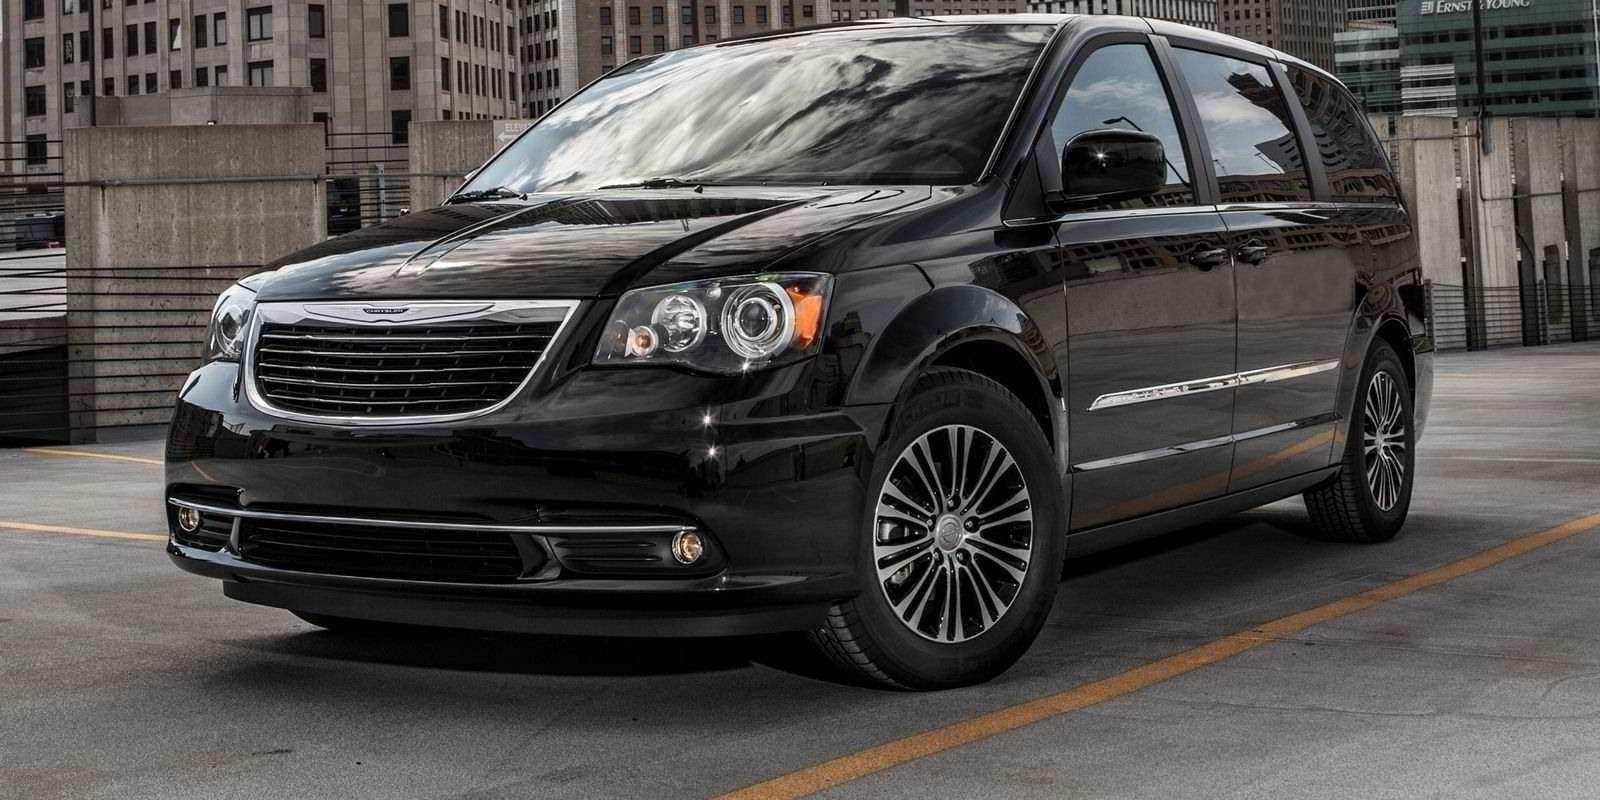 32 All New 2020 Chrysler Town Country Exterior and Interior with 2020 Chrysler Town Country